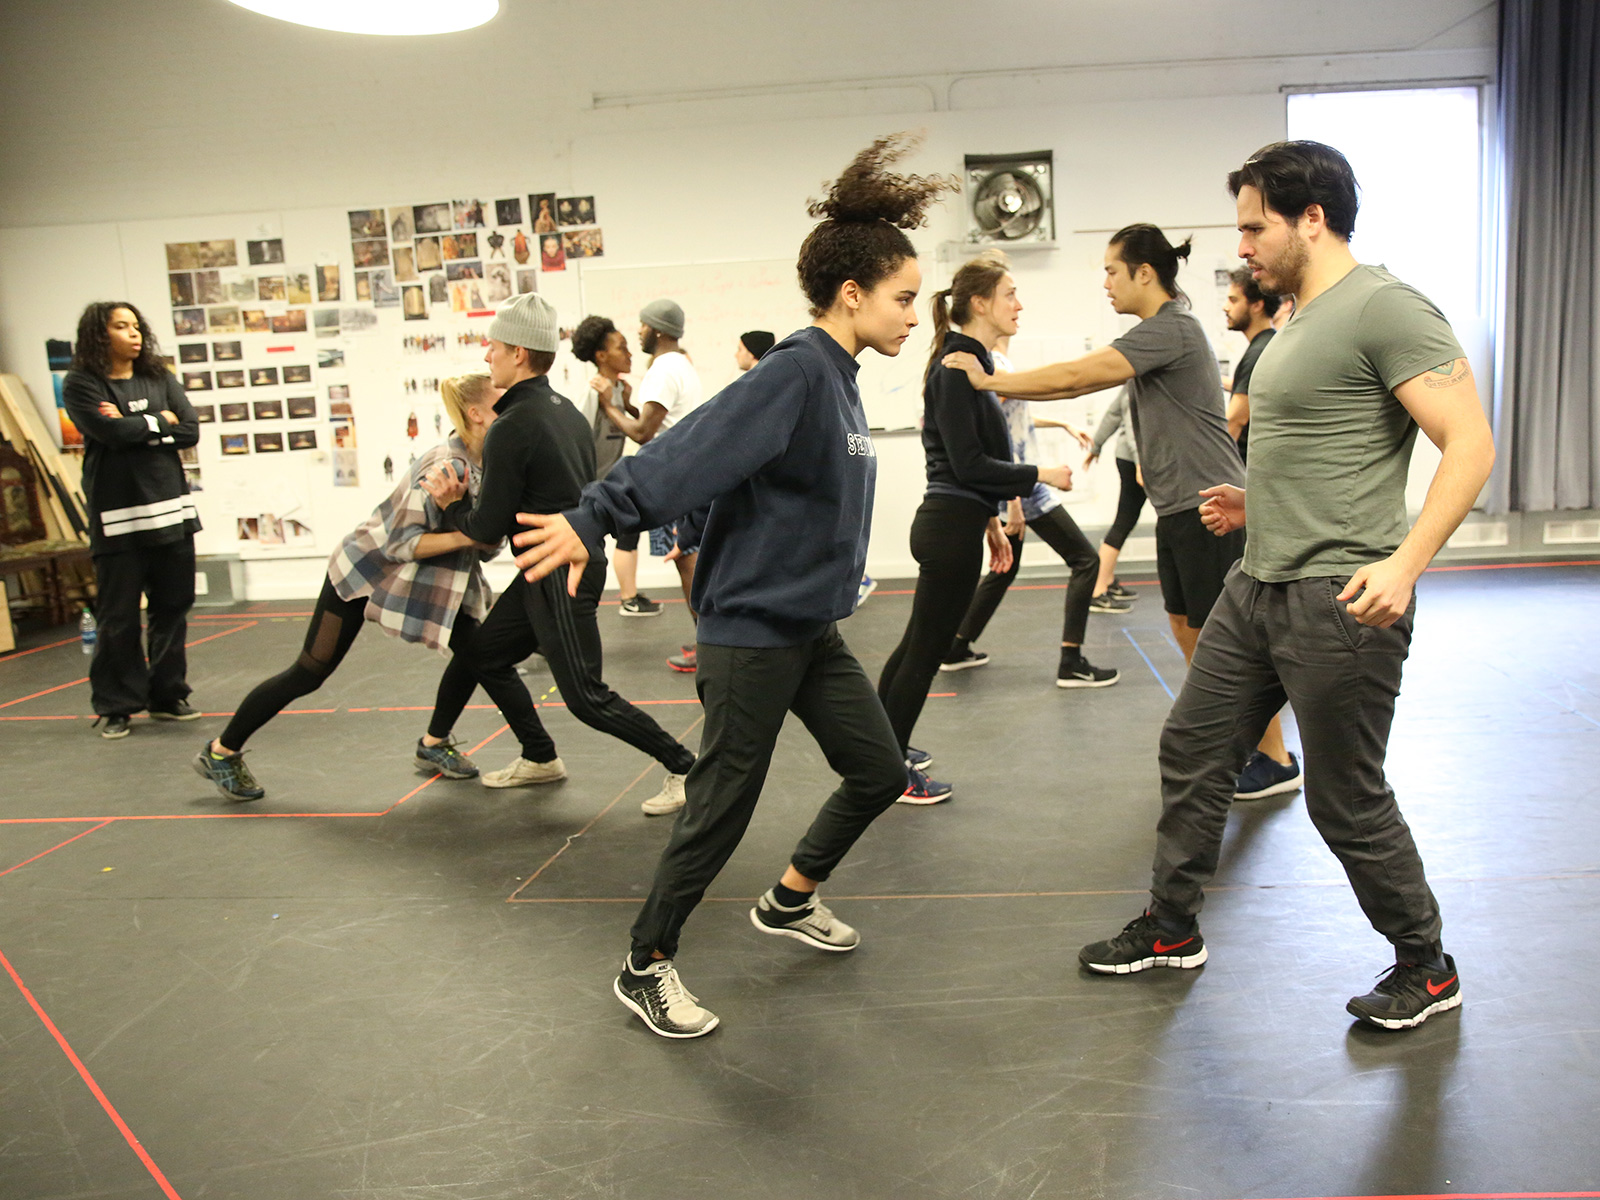 Juliana Canfield ('17) and Sebastian Arboleda ('17) in a Movement class in the Wendy Wasserstein Room at 149 York, Room 107.